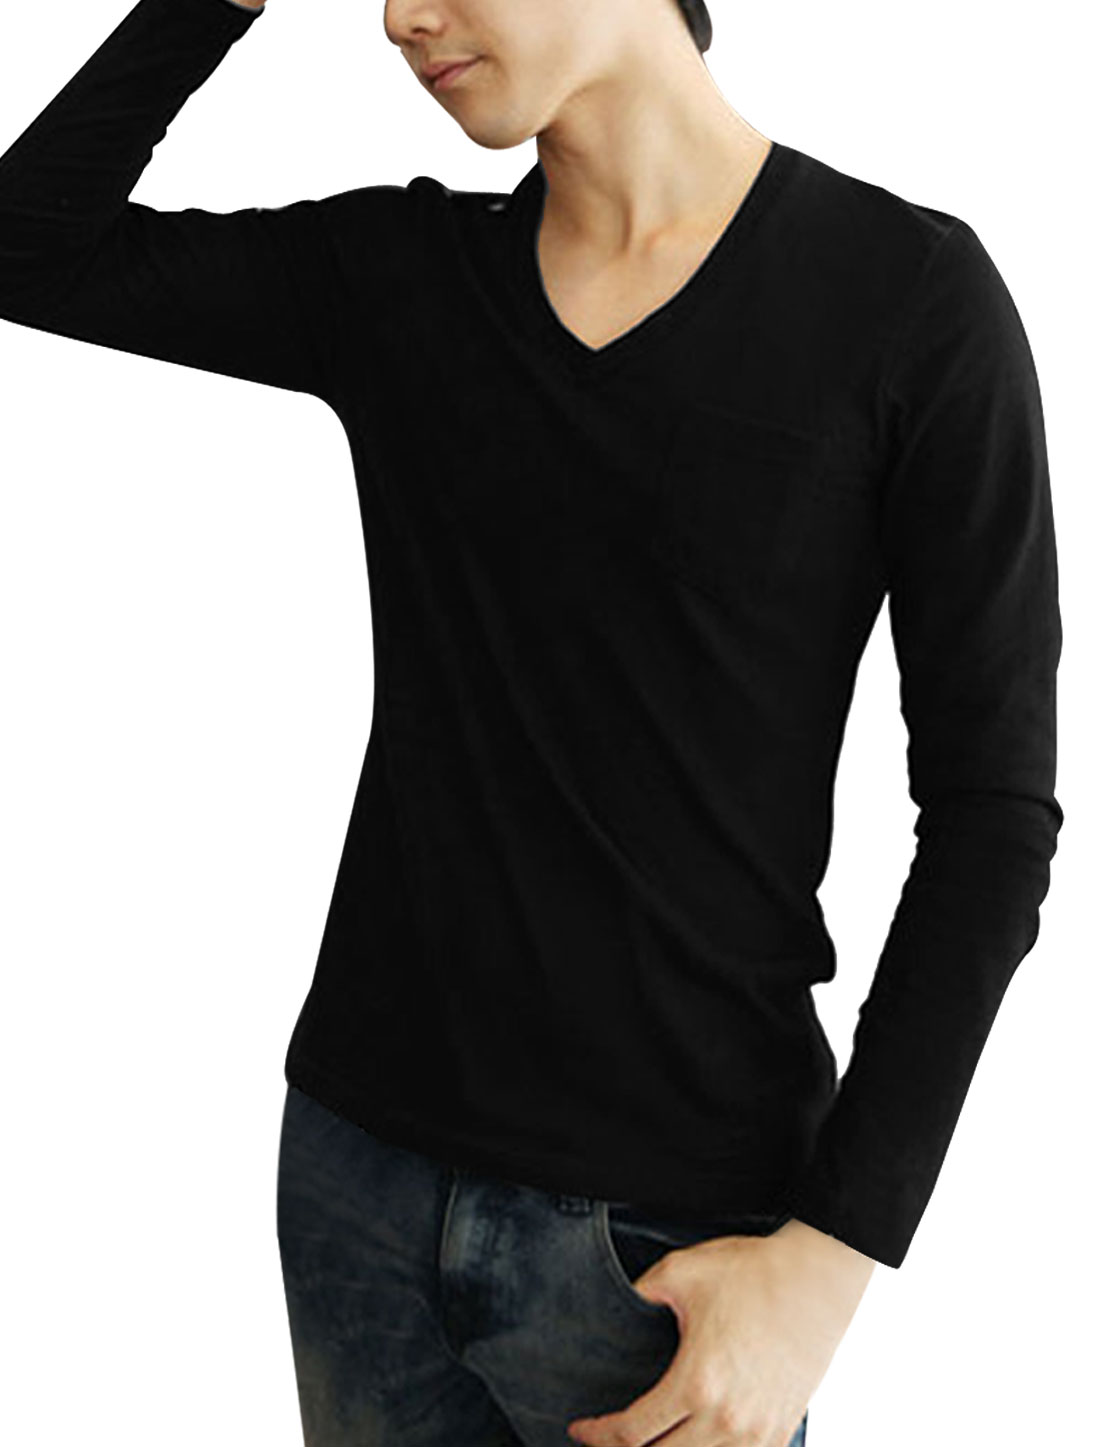 Men Black Long Sleeves Button-tab Epaulet Pullover Tee Shirt M